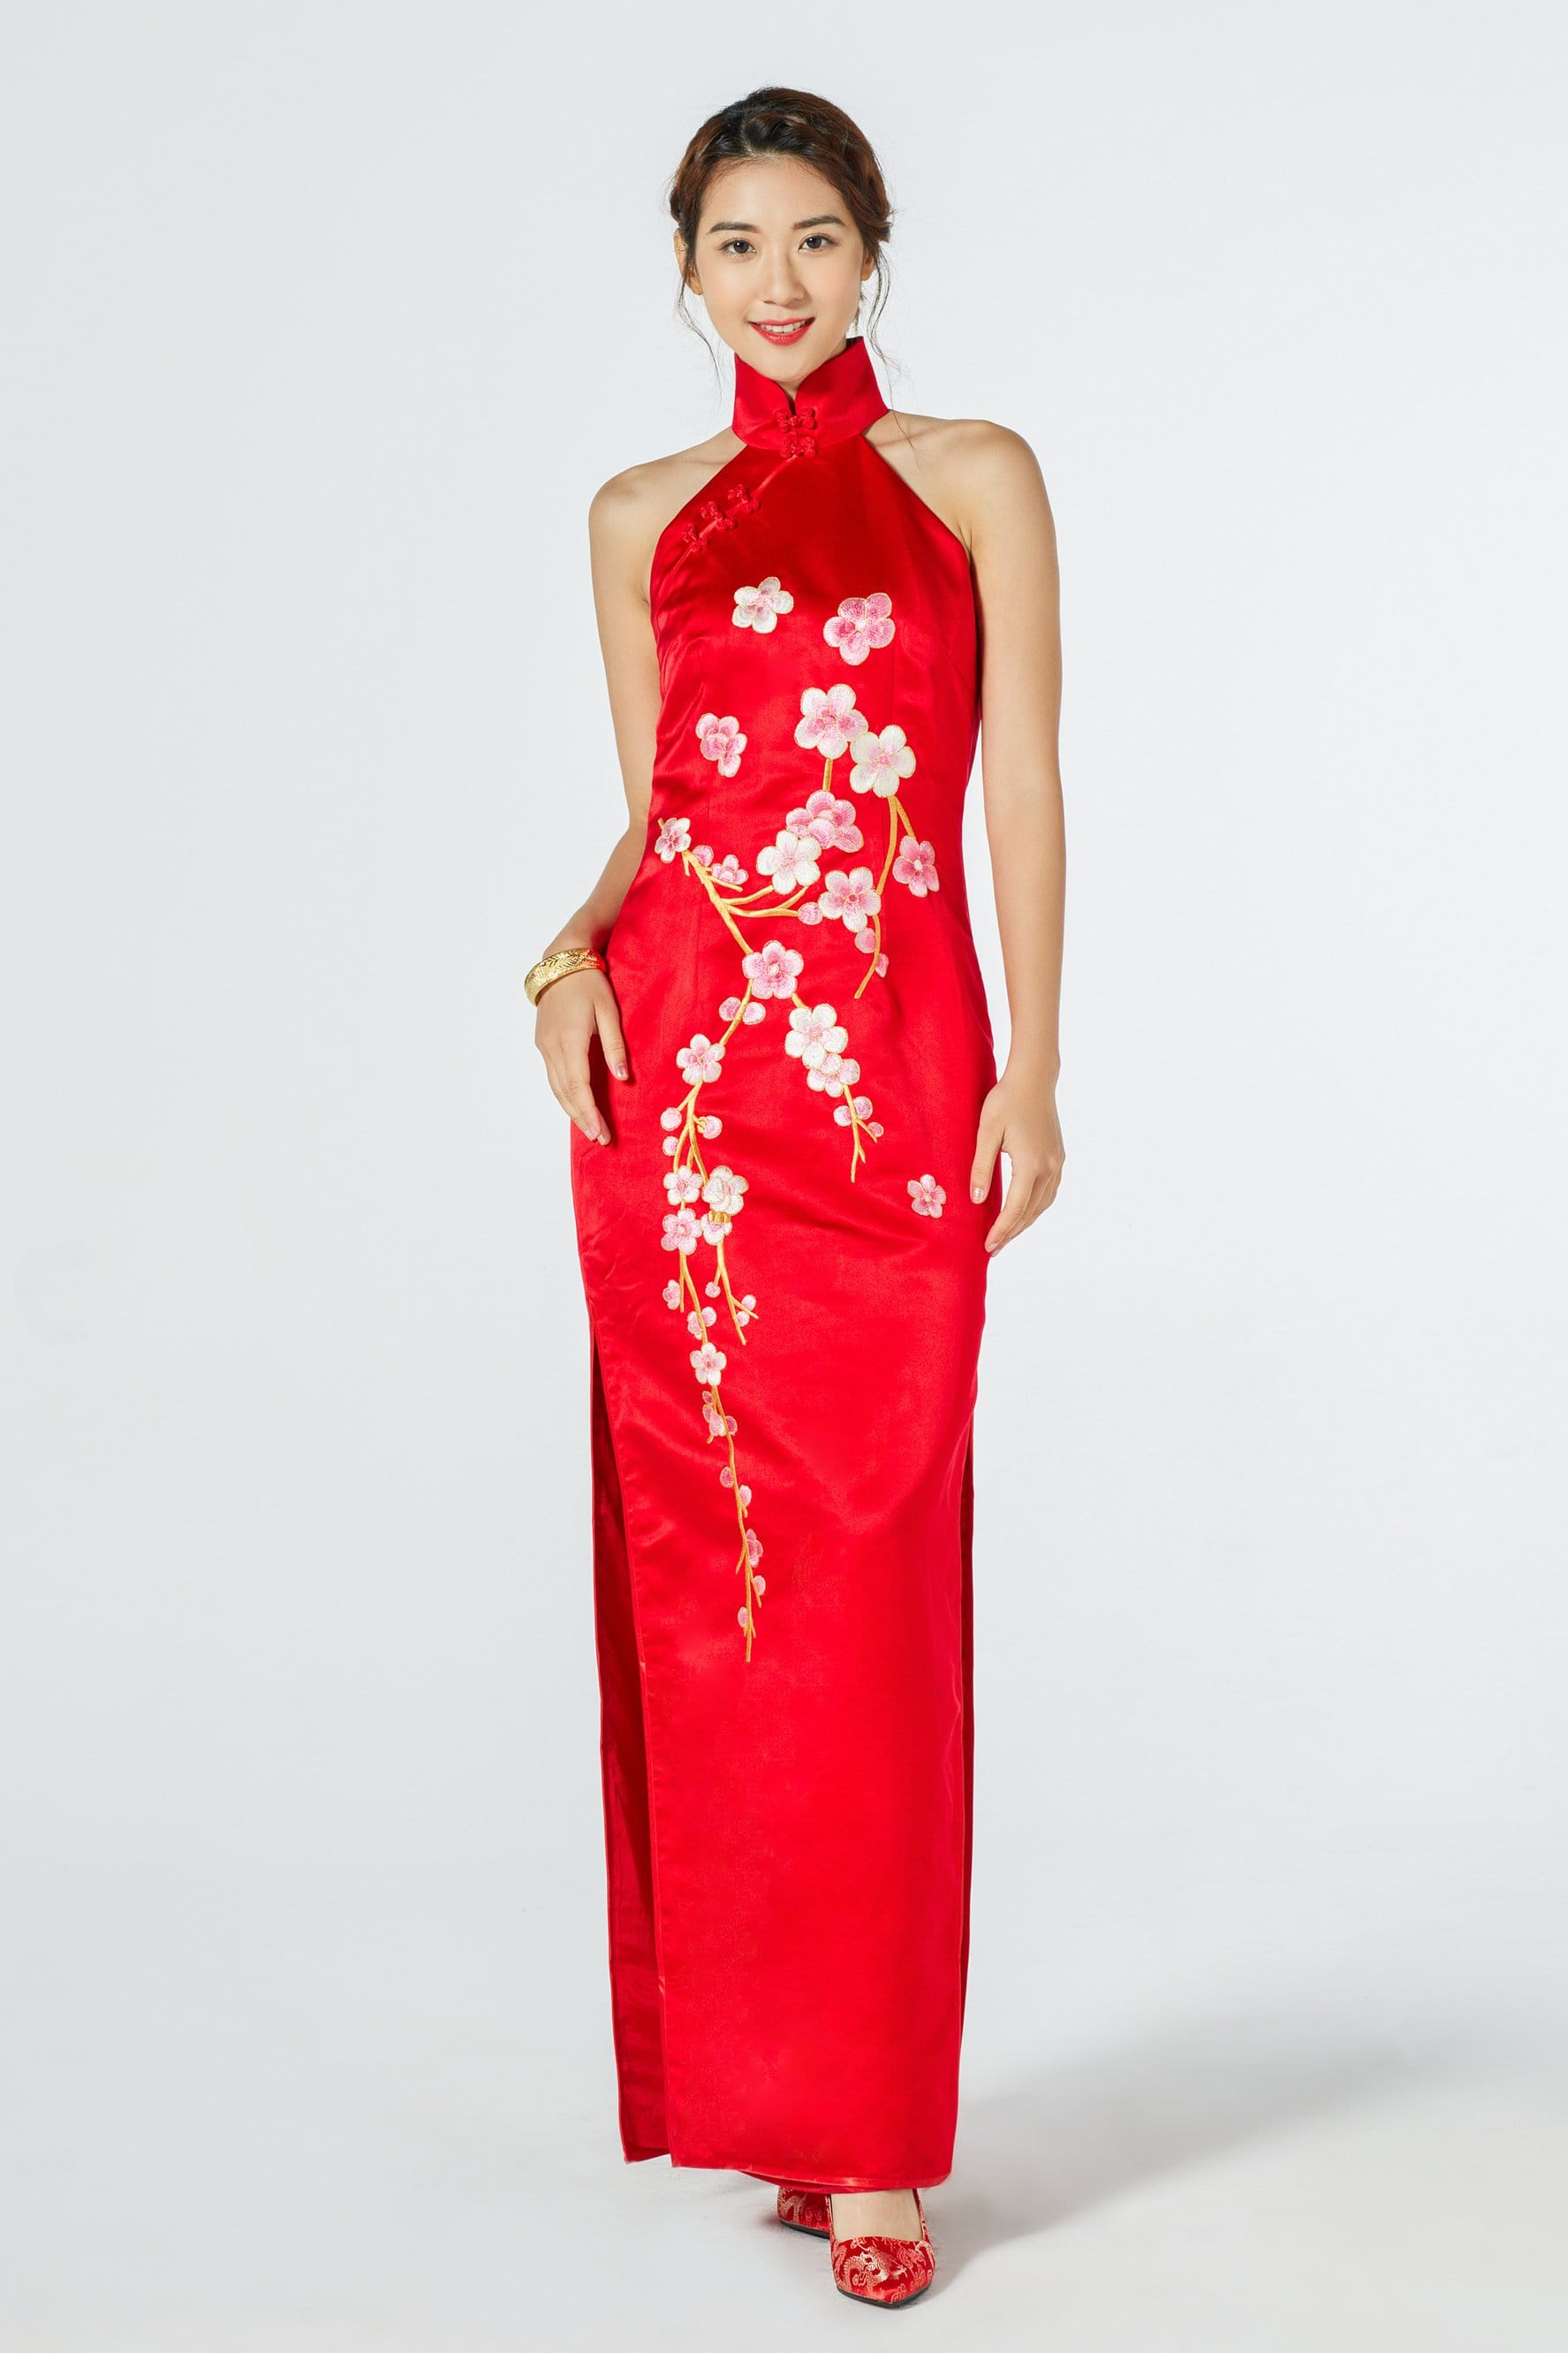 Amanda Bespoke Dress - Cheongsam - East Meets Dress